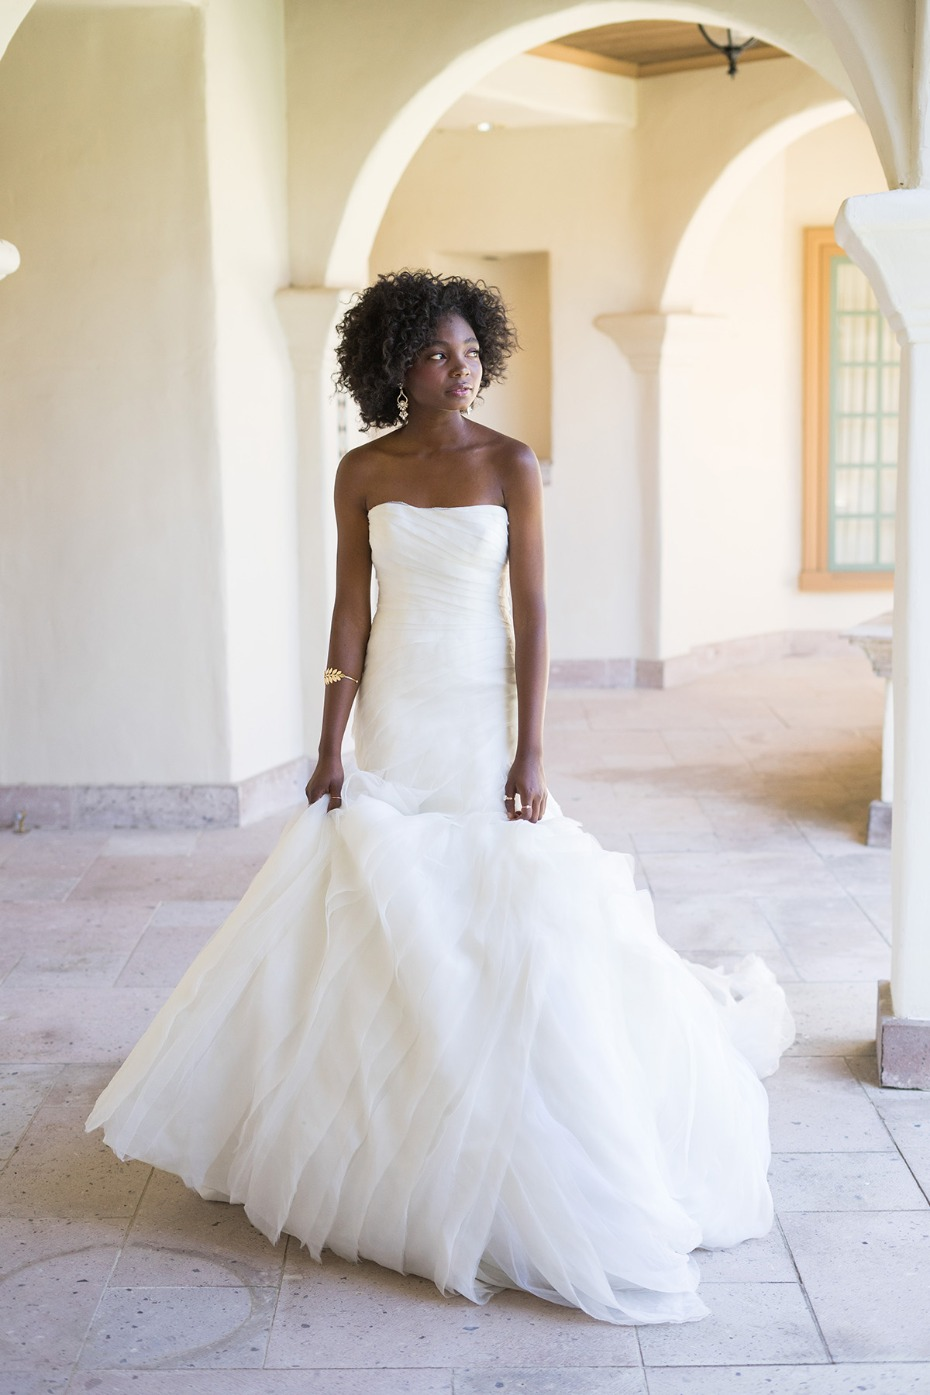 WHITE by Vera Wang Exclusively for David's Bridal Bias-Tier Trumpet Wedding Dress, $1,498